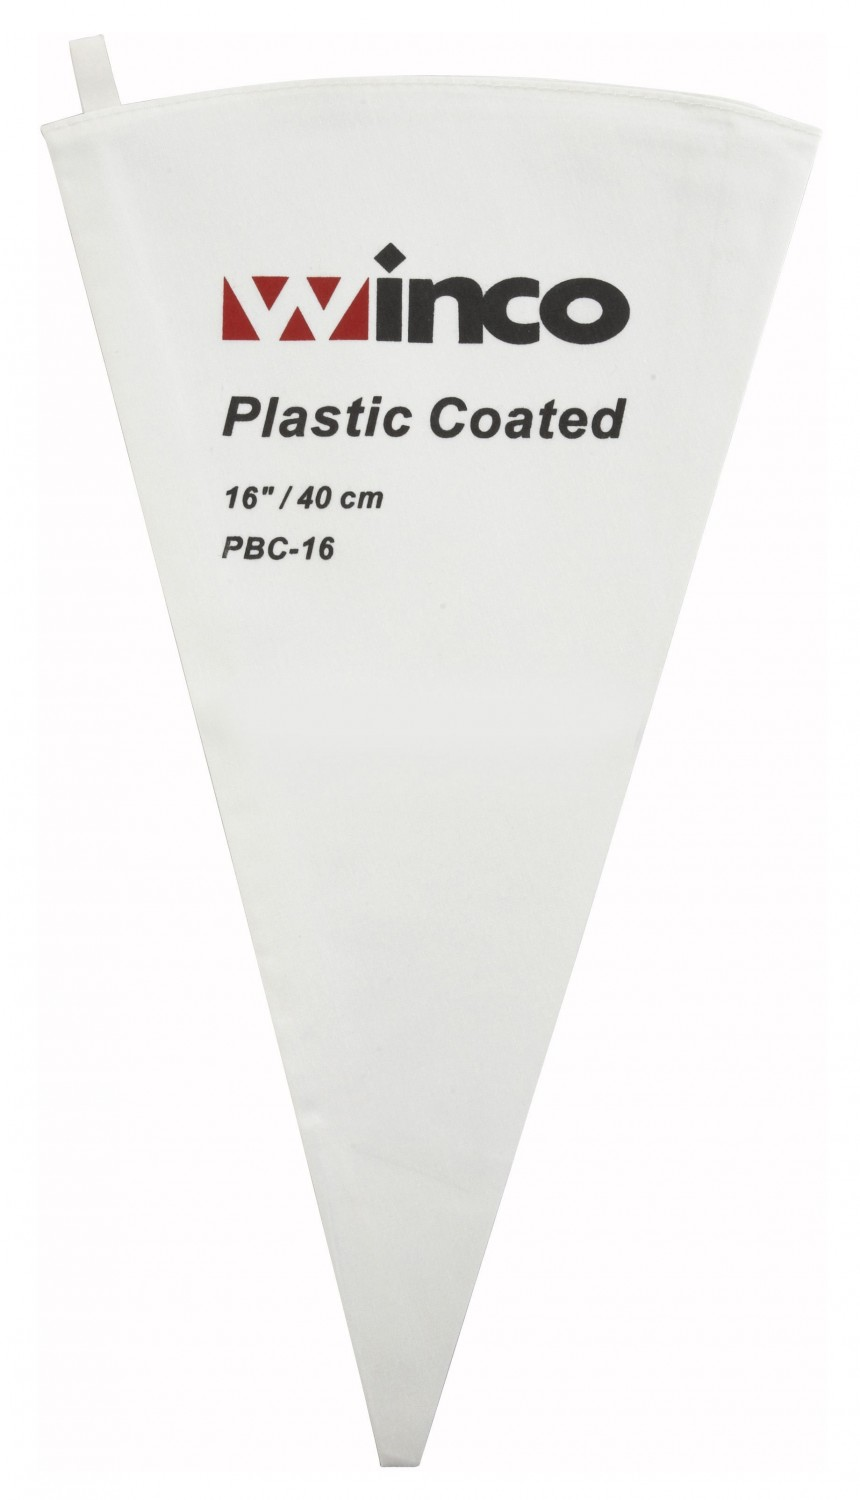 Winco PBC-16 Cotton Pastry Bag With Plastic Coating 16""